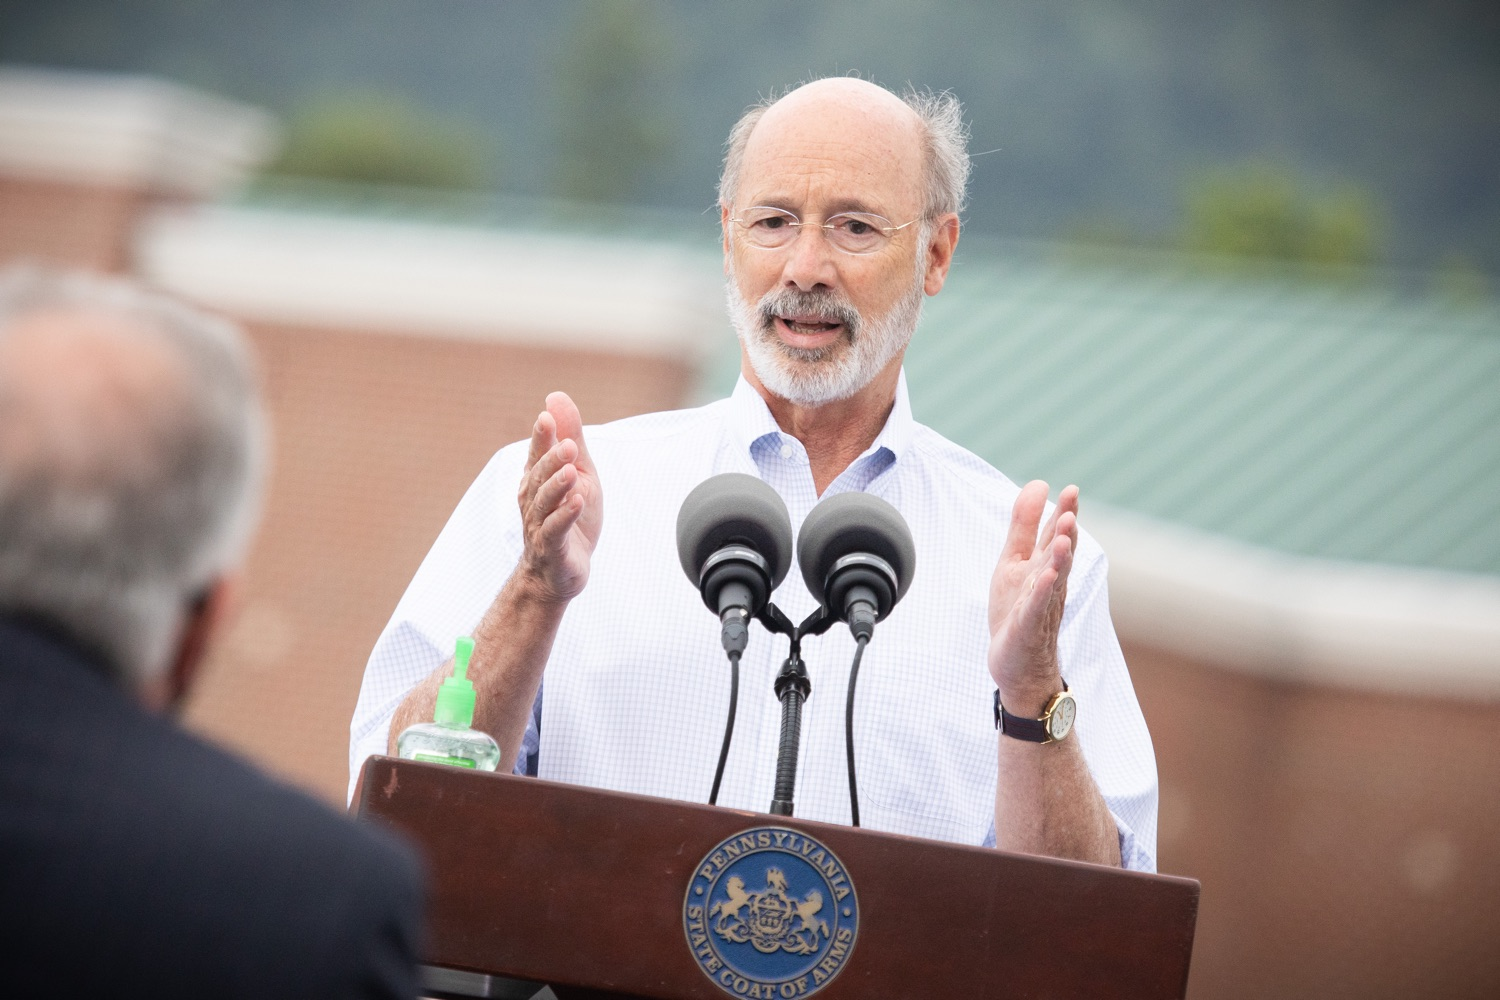 """<a href=""""https://filesource.wostreaming.net/commonwealthofpa/photo/18166_gov_cares_act_dz_16.jpg"""" target=""""_blank"""">⇣Download Photo<br></a>Pennsylvania Governor Tom Wolf speaking to reporters at the announcement. Today, Governor Tom Wolf announced the availability of $50 million in grant funding to help employers provide hazard pay to employees in life-sustaining occupations during the COVID-19 pandemic. Hazard pay is intended to keep front-line employees working in vital industry sectors across Pennsylvania.  Harrisburg, PA  July 16, 2020"""